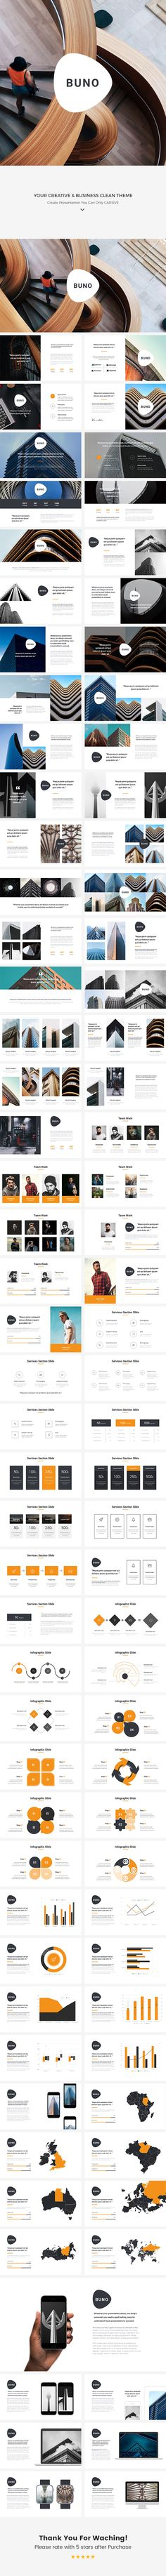 Xzero Creative Keynote Template Creative Powerpoint - Fresh tsunami powerpoint presentation design